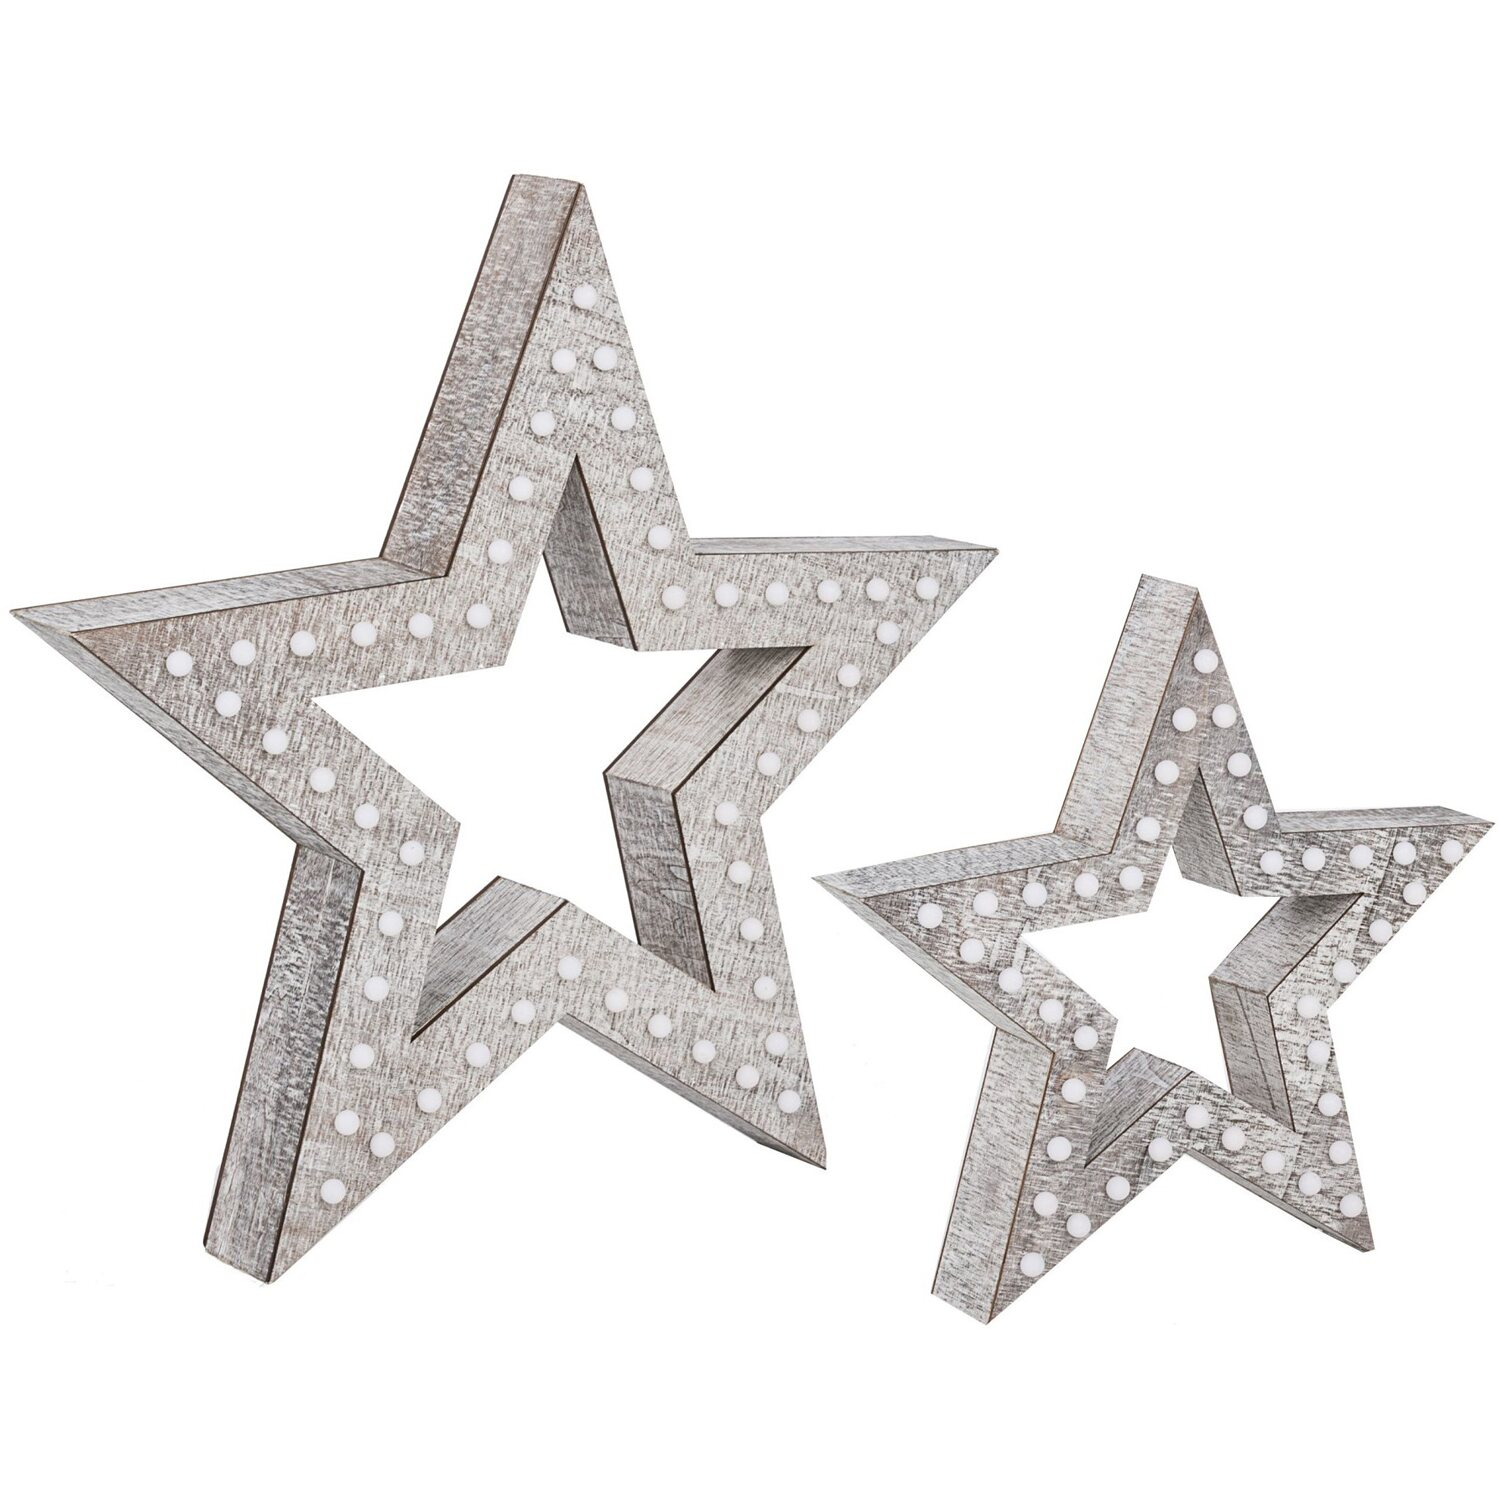 best of home Best of Home Beleuchtetes Deko-Objekt Modern Wood Star 72 cm x 76 cm x 10,5 cm